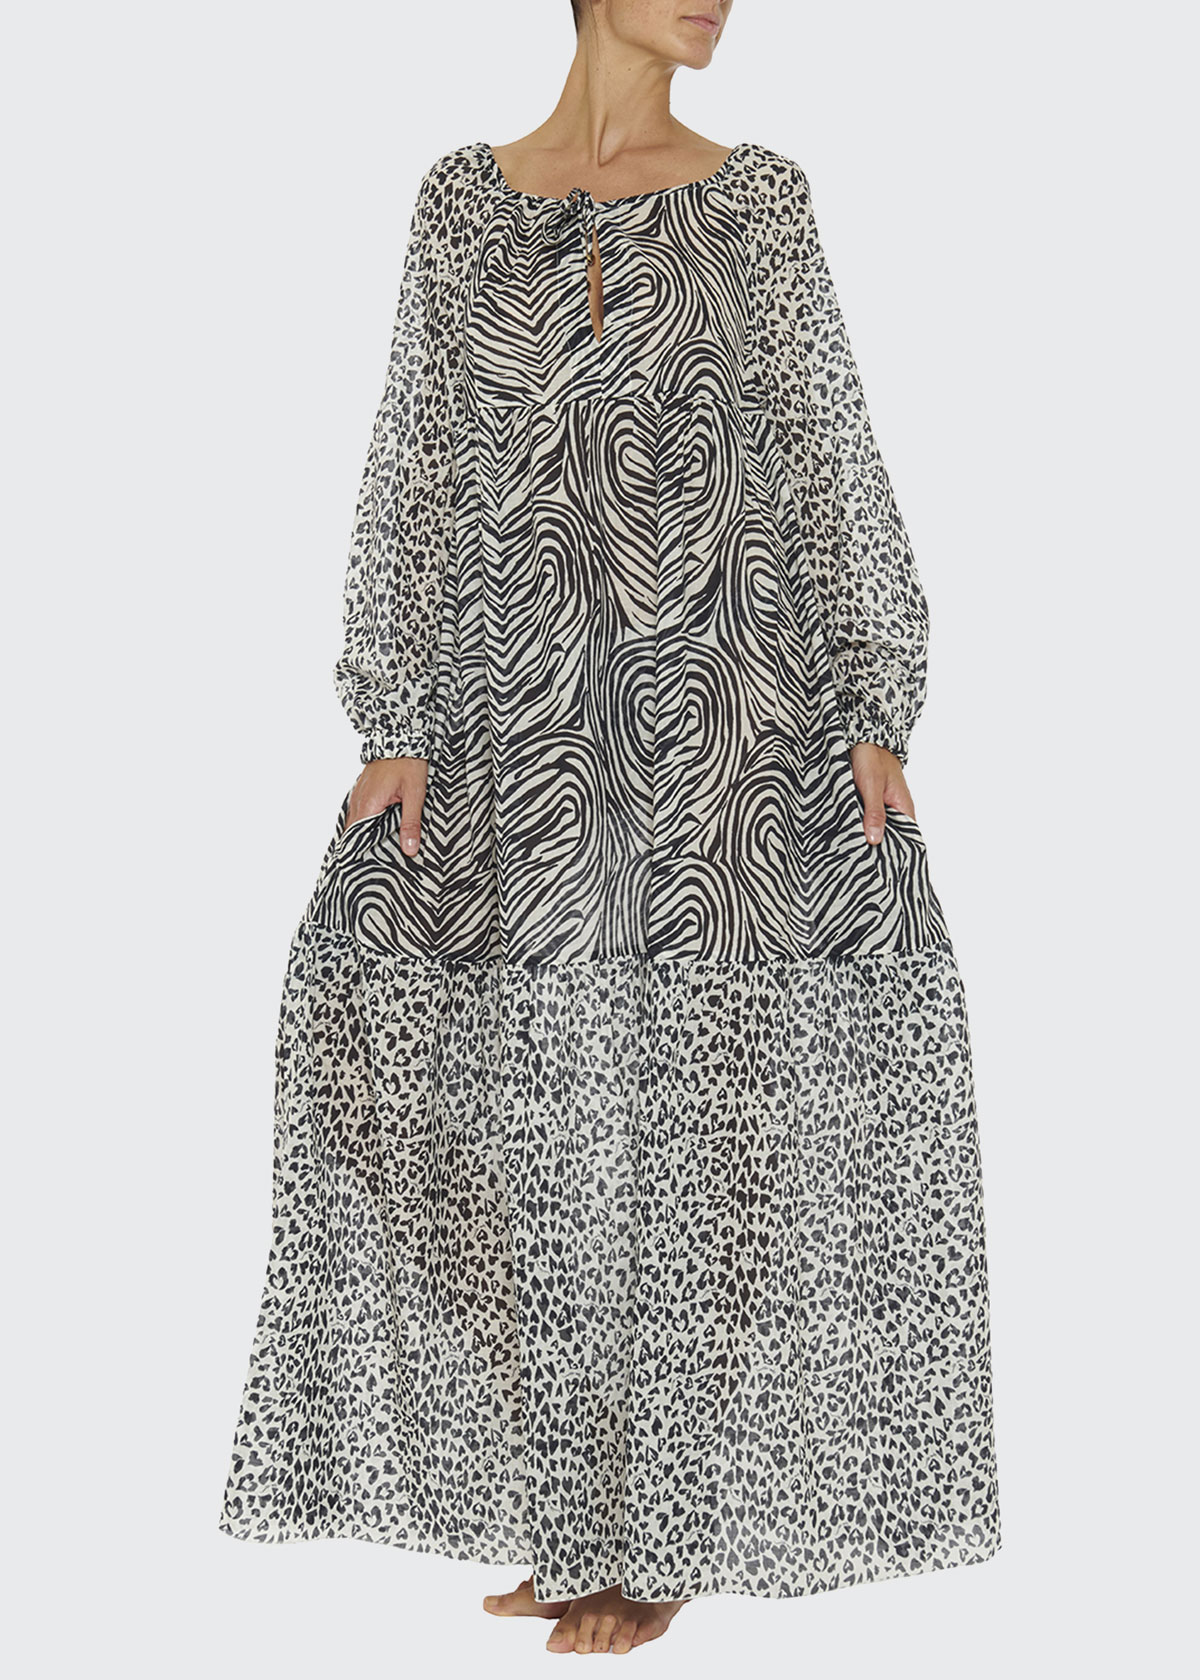 Stella Mccartney ANIMAL-MIX-PRINT LONG DRESS